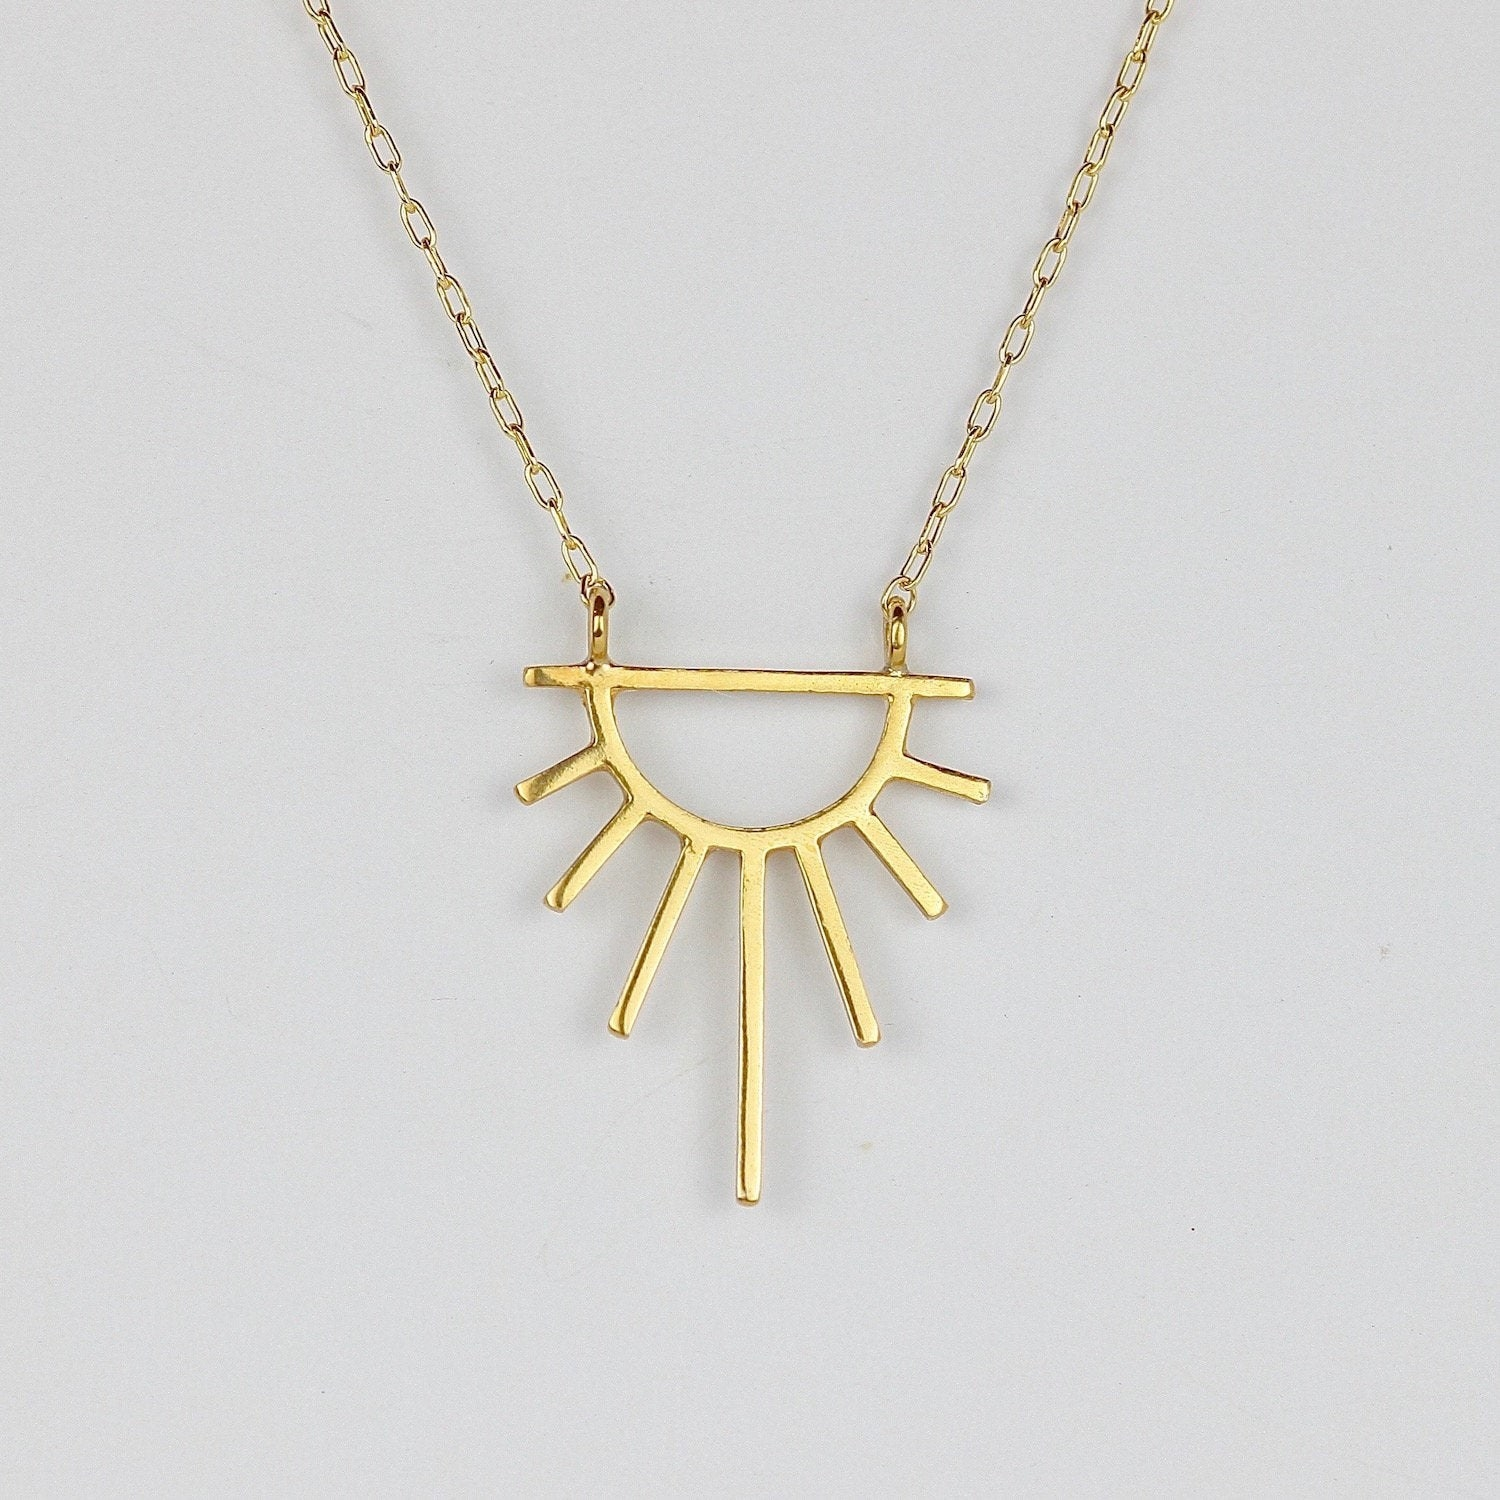 Geometric gold sun necklace against grey backdrop